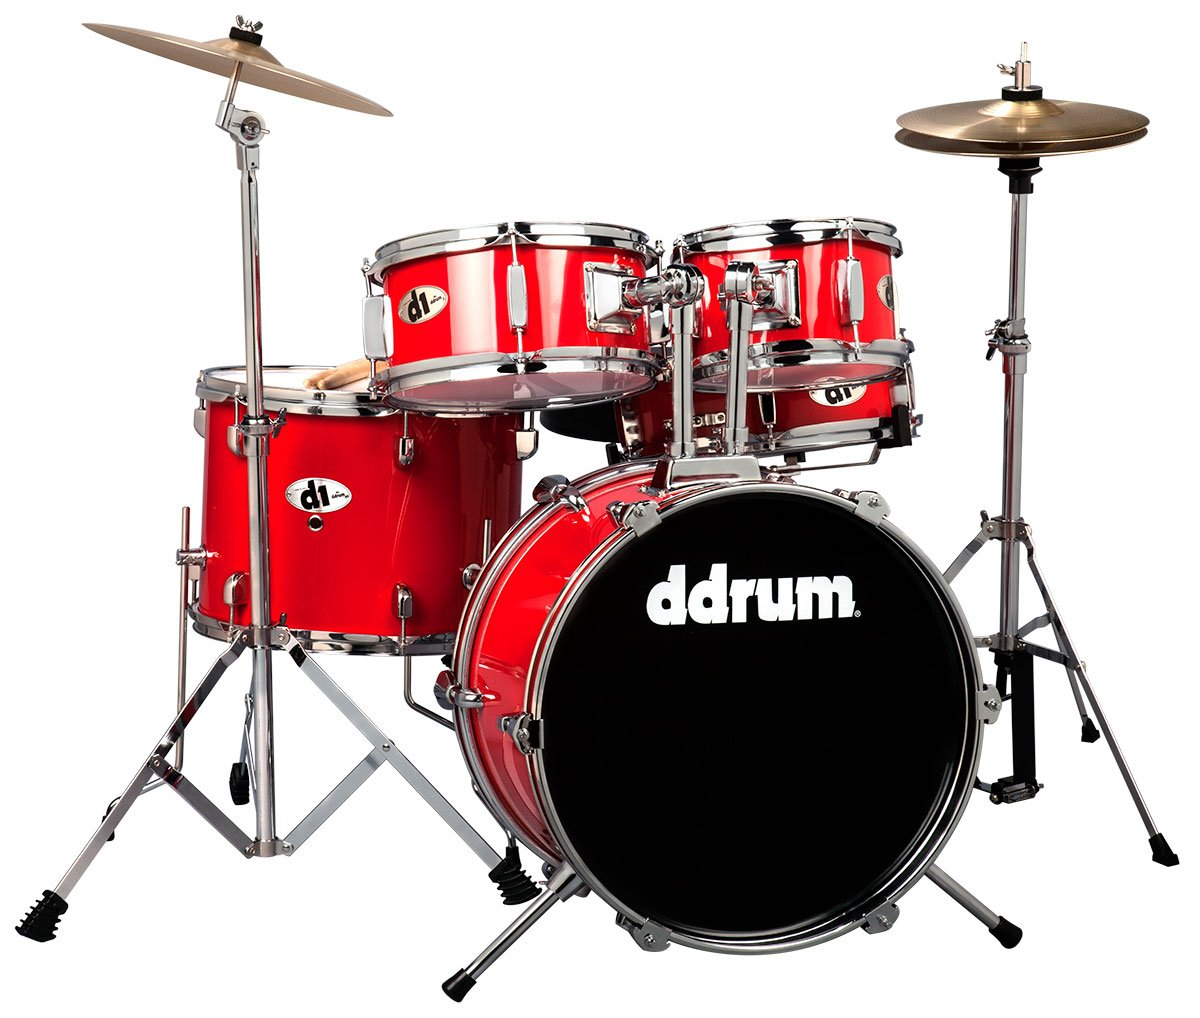 DDrum D1 MB Jr - 5pc - Black - Complete Kit